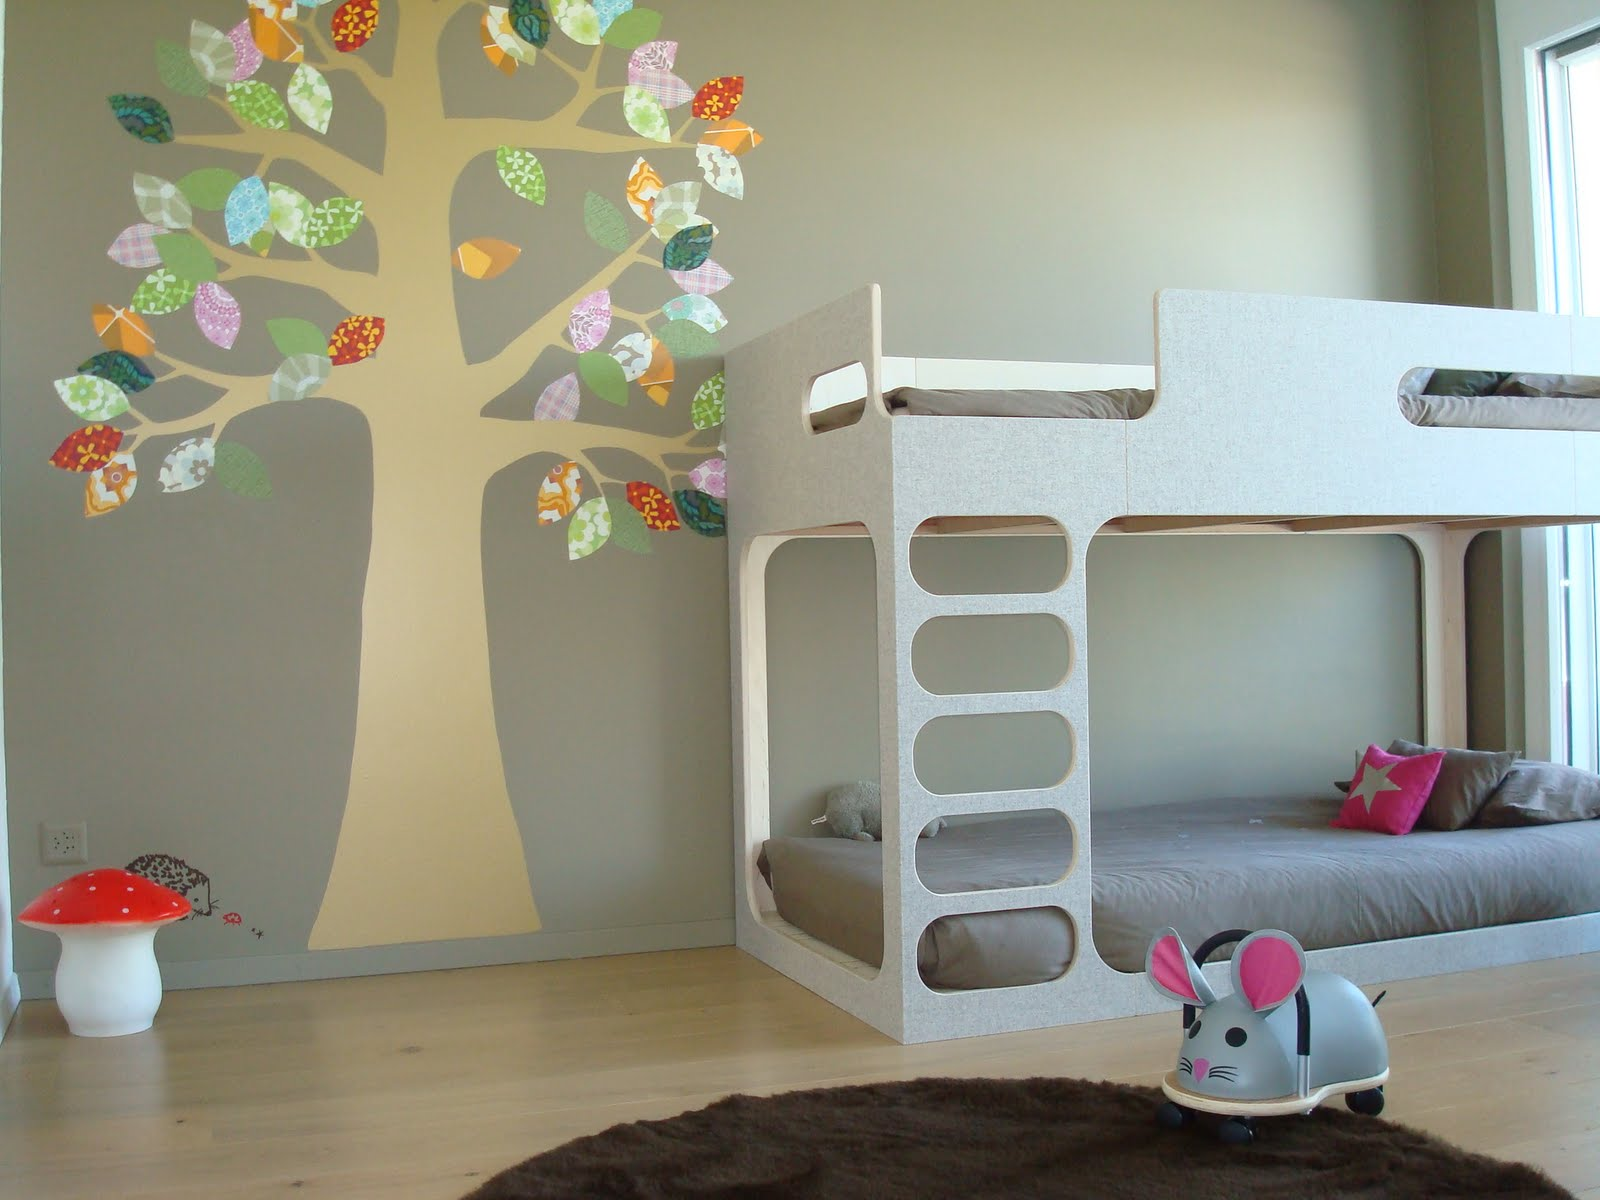 Childrens bedroom wallpaper ideas home decor uk for Room decor ideas for toddlers